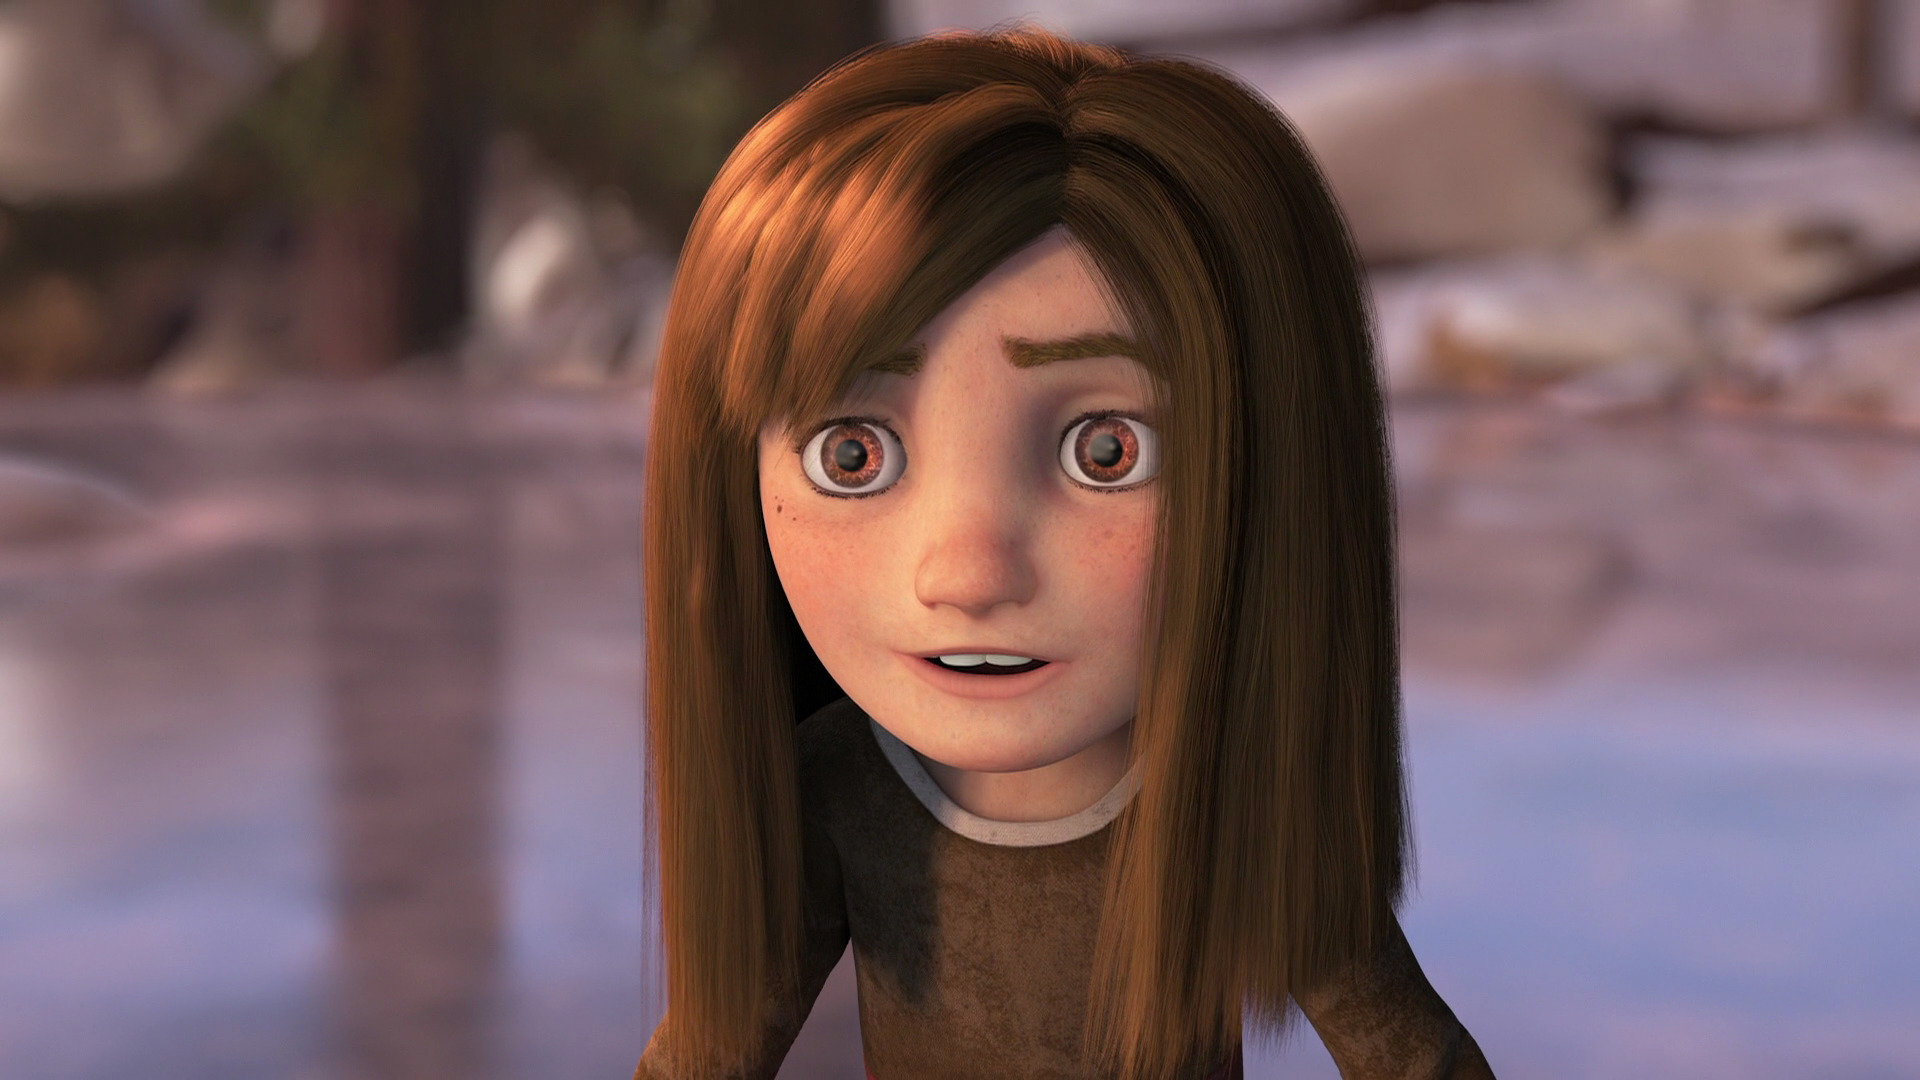 Jack s sister s name rise of the guardians wiki